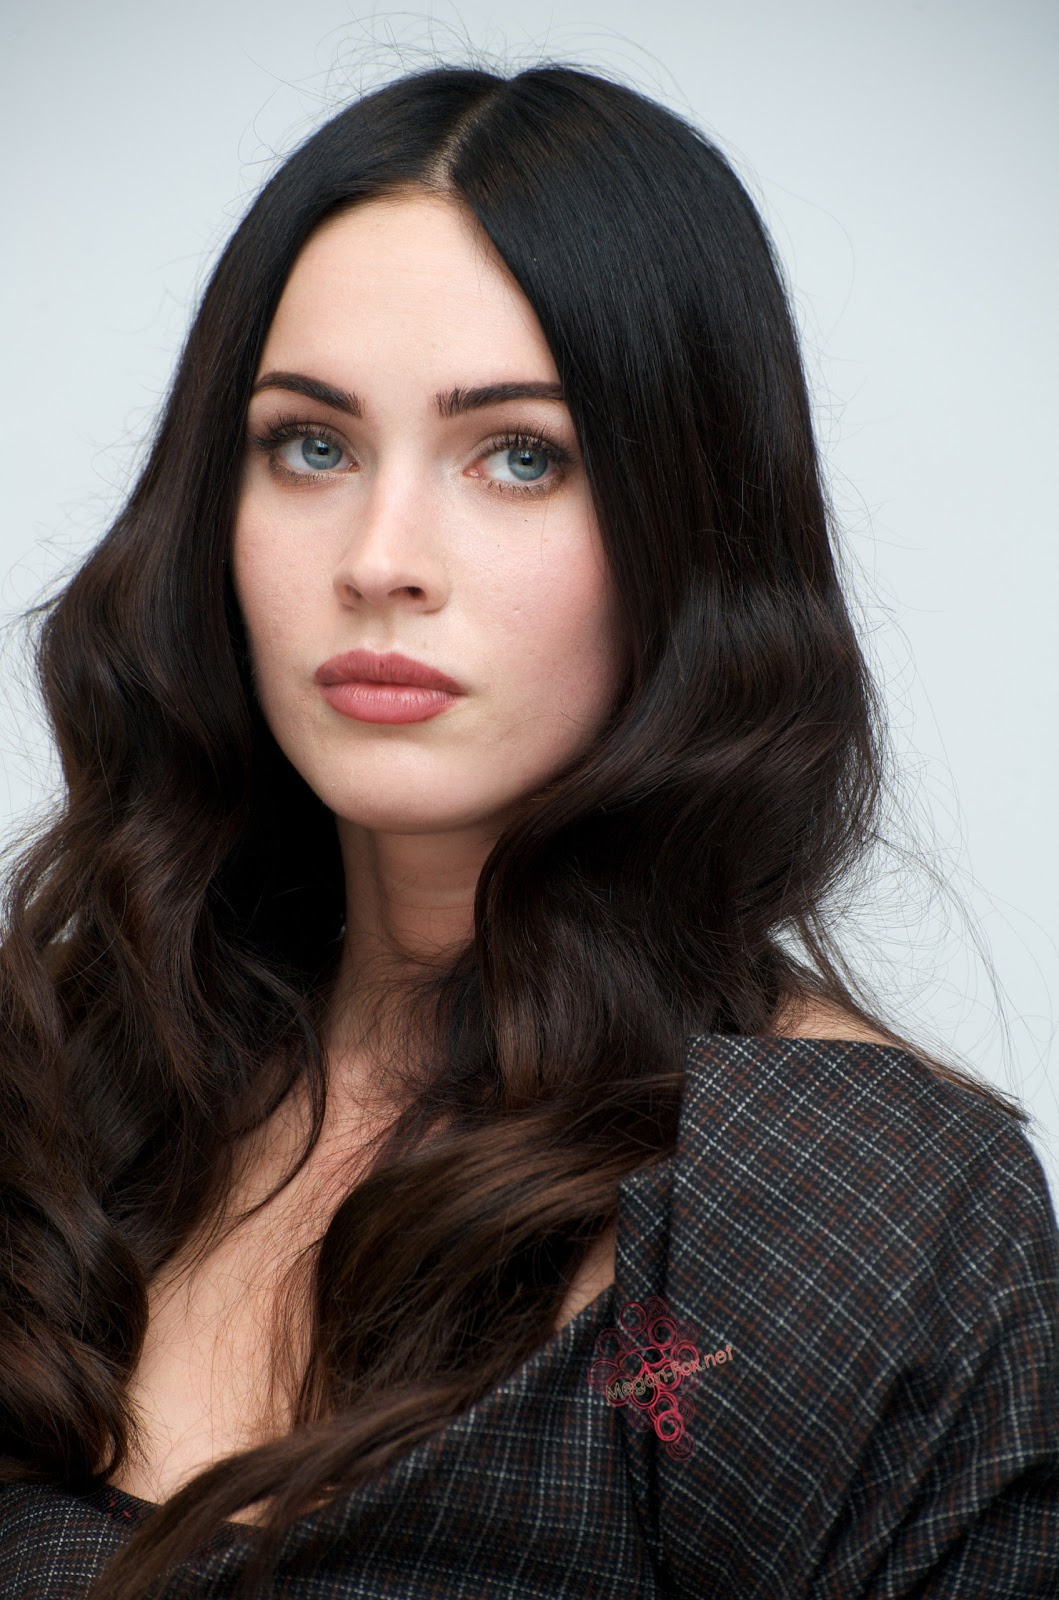 Pictures Of Megan Fox Hairstyles New Haircut Hairstyles Haircuts